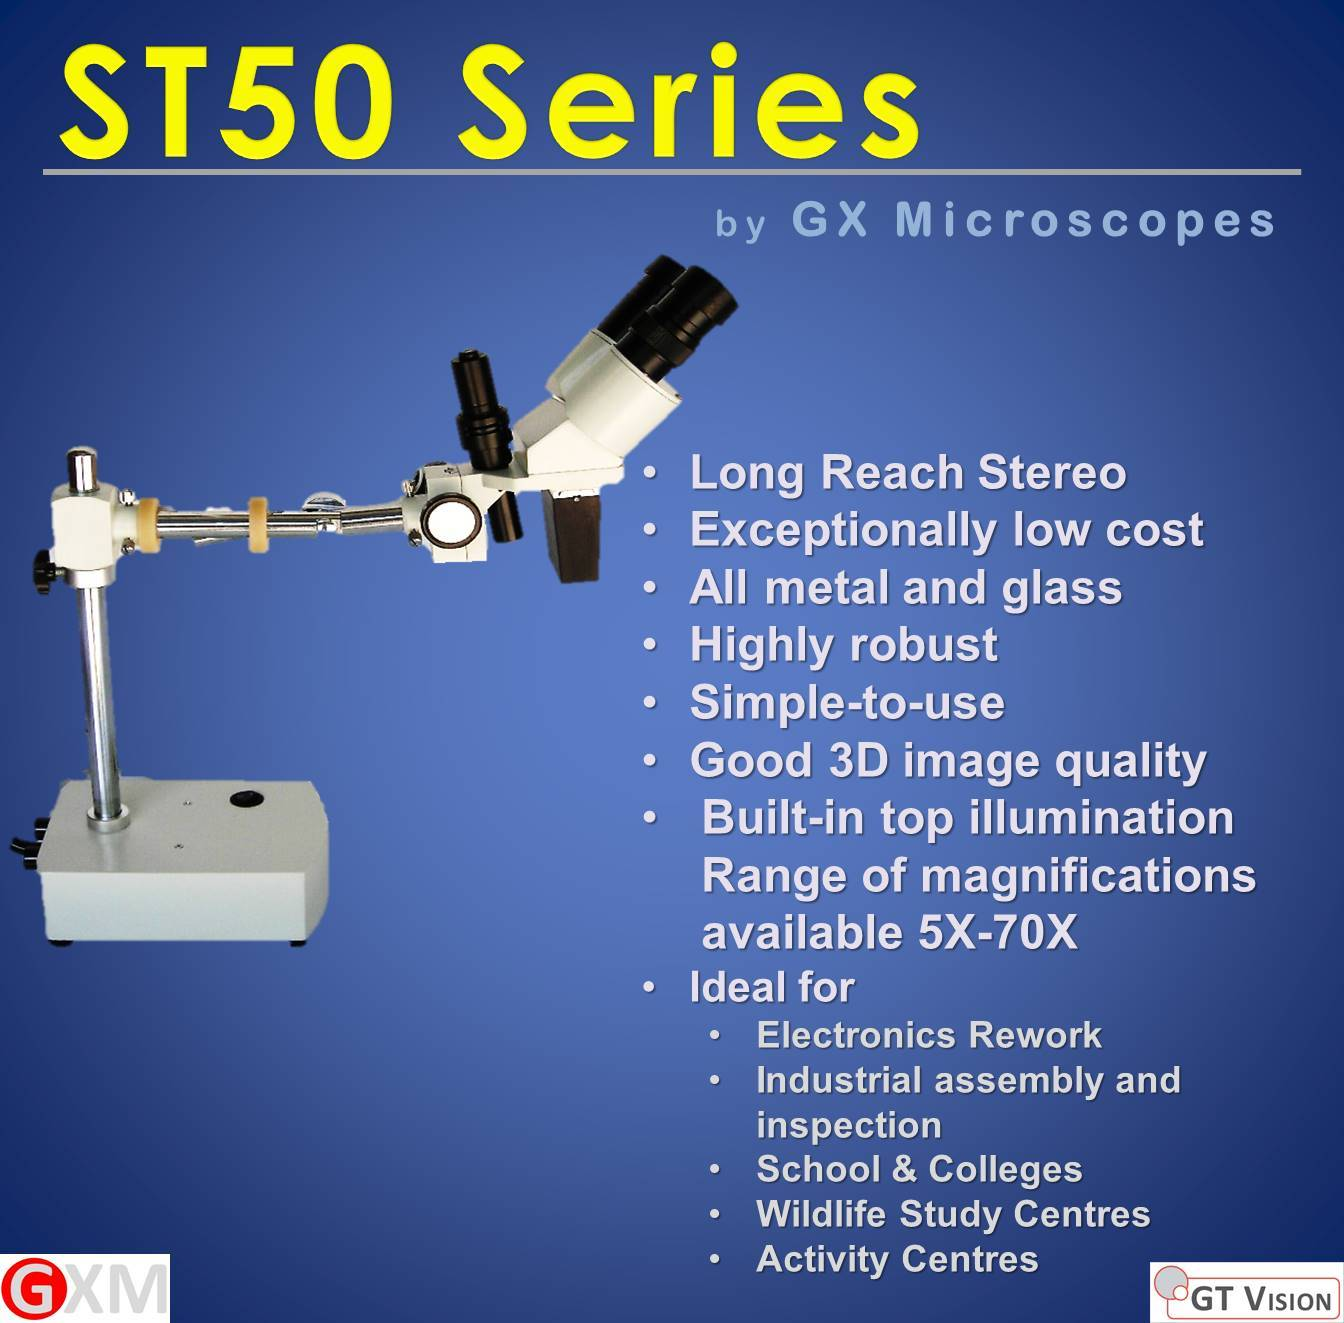 ST50_A_and_B_Long_Reach_Stereo_Microscope_by_GX_Microscopes